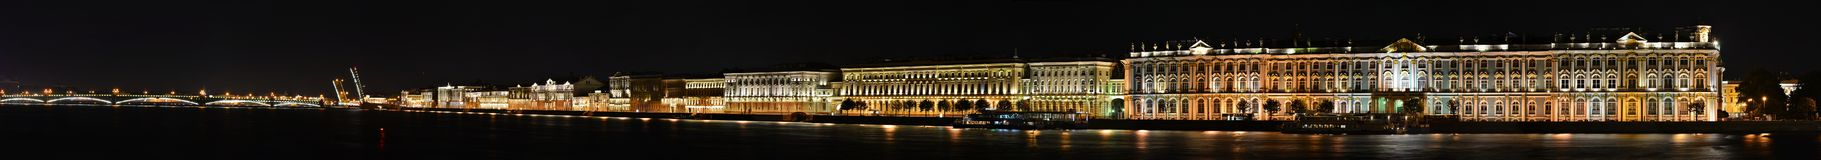 Saint Petersburg, Palace Embankment Royalty Free Stock Photos